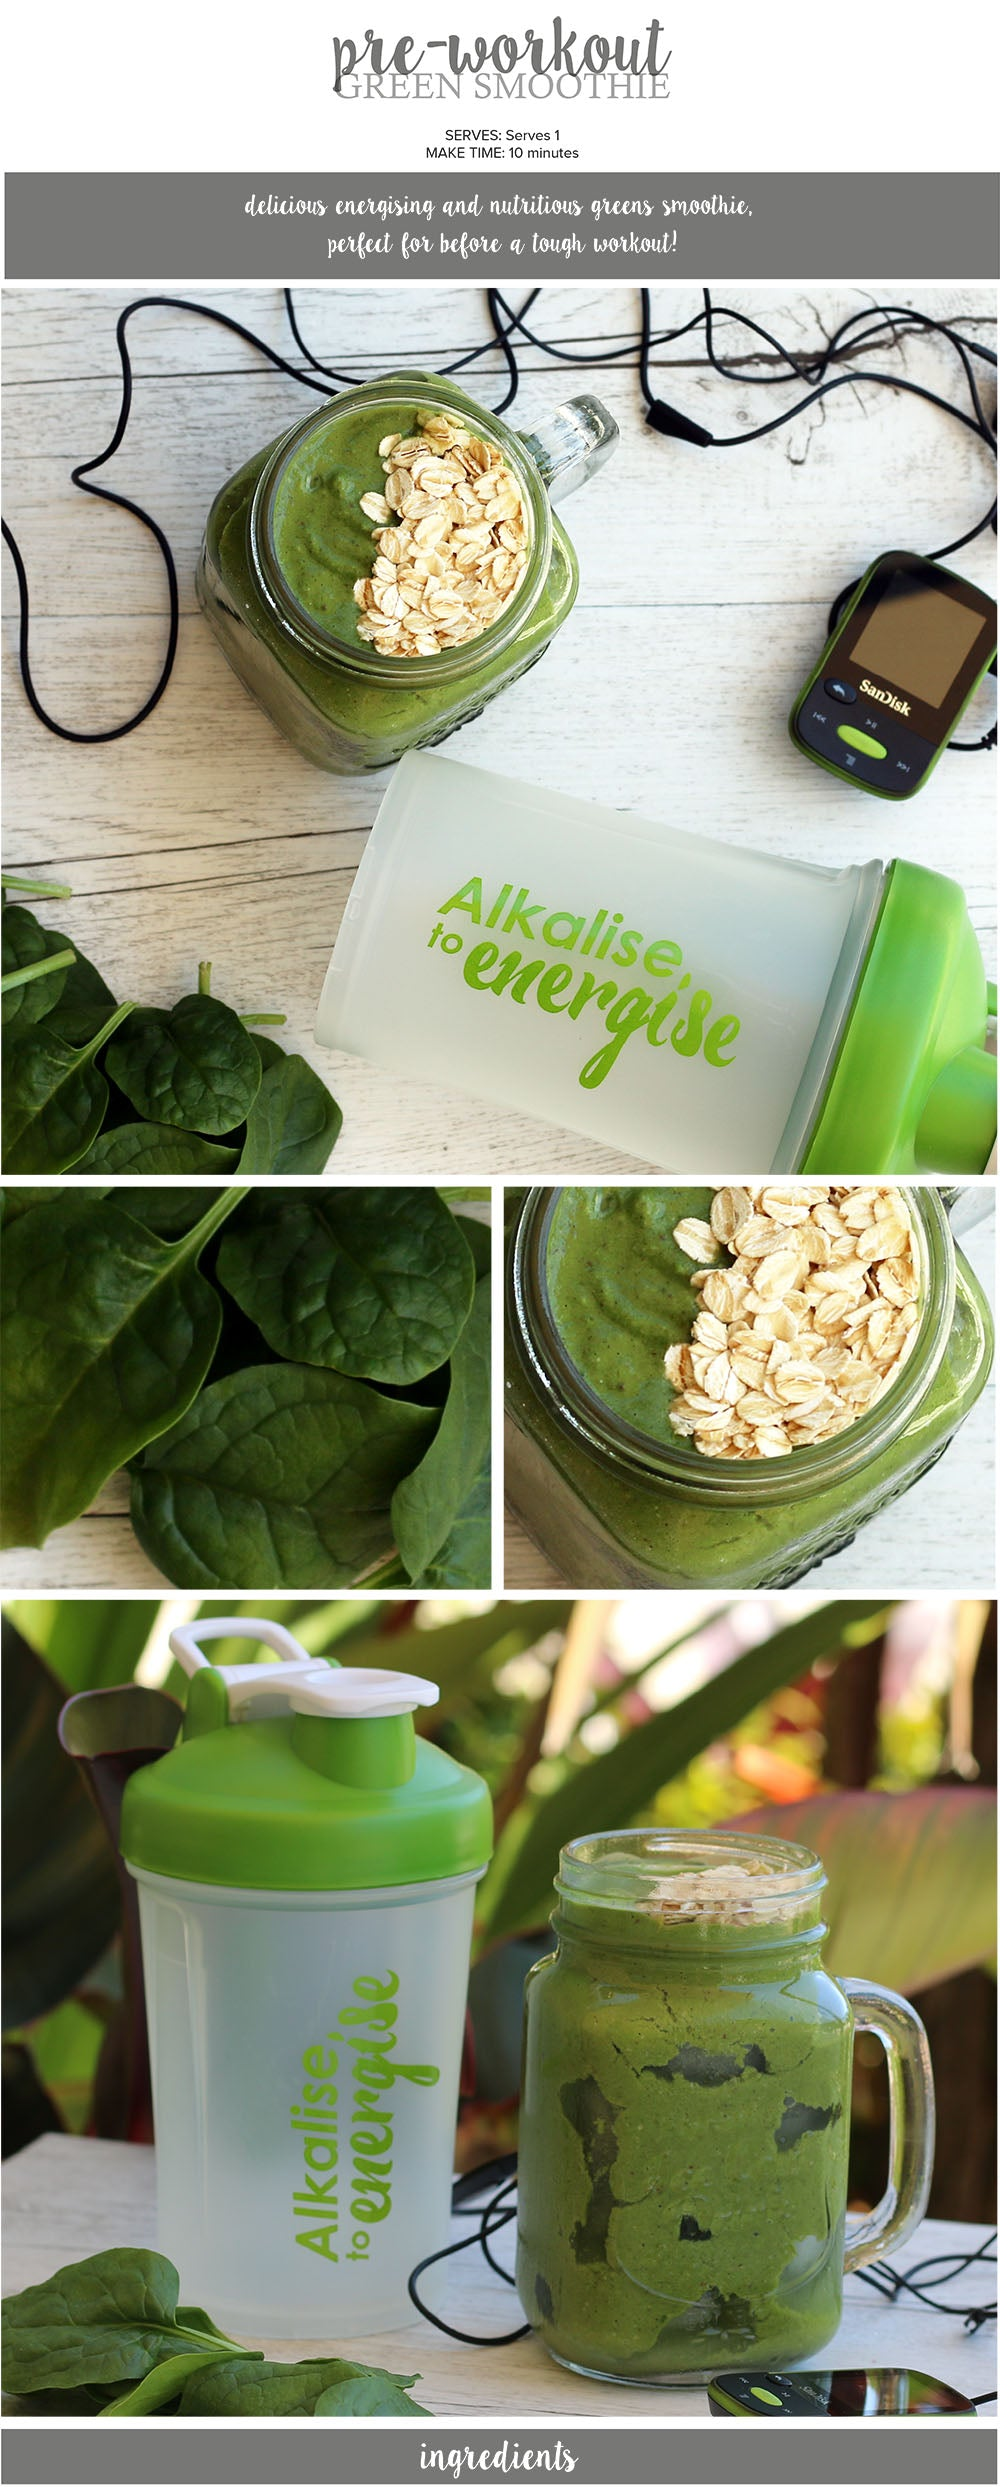 Pre Workout Green Smoothie Recipe